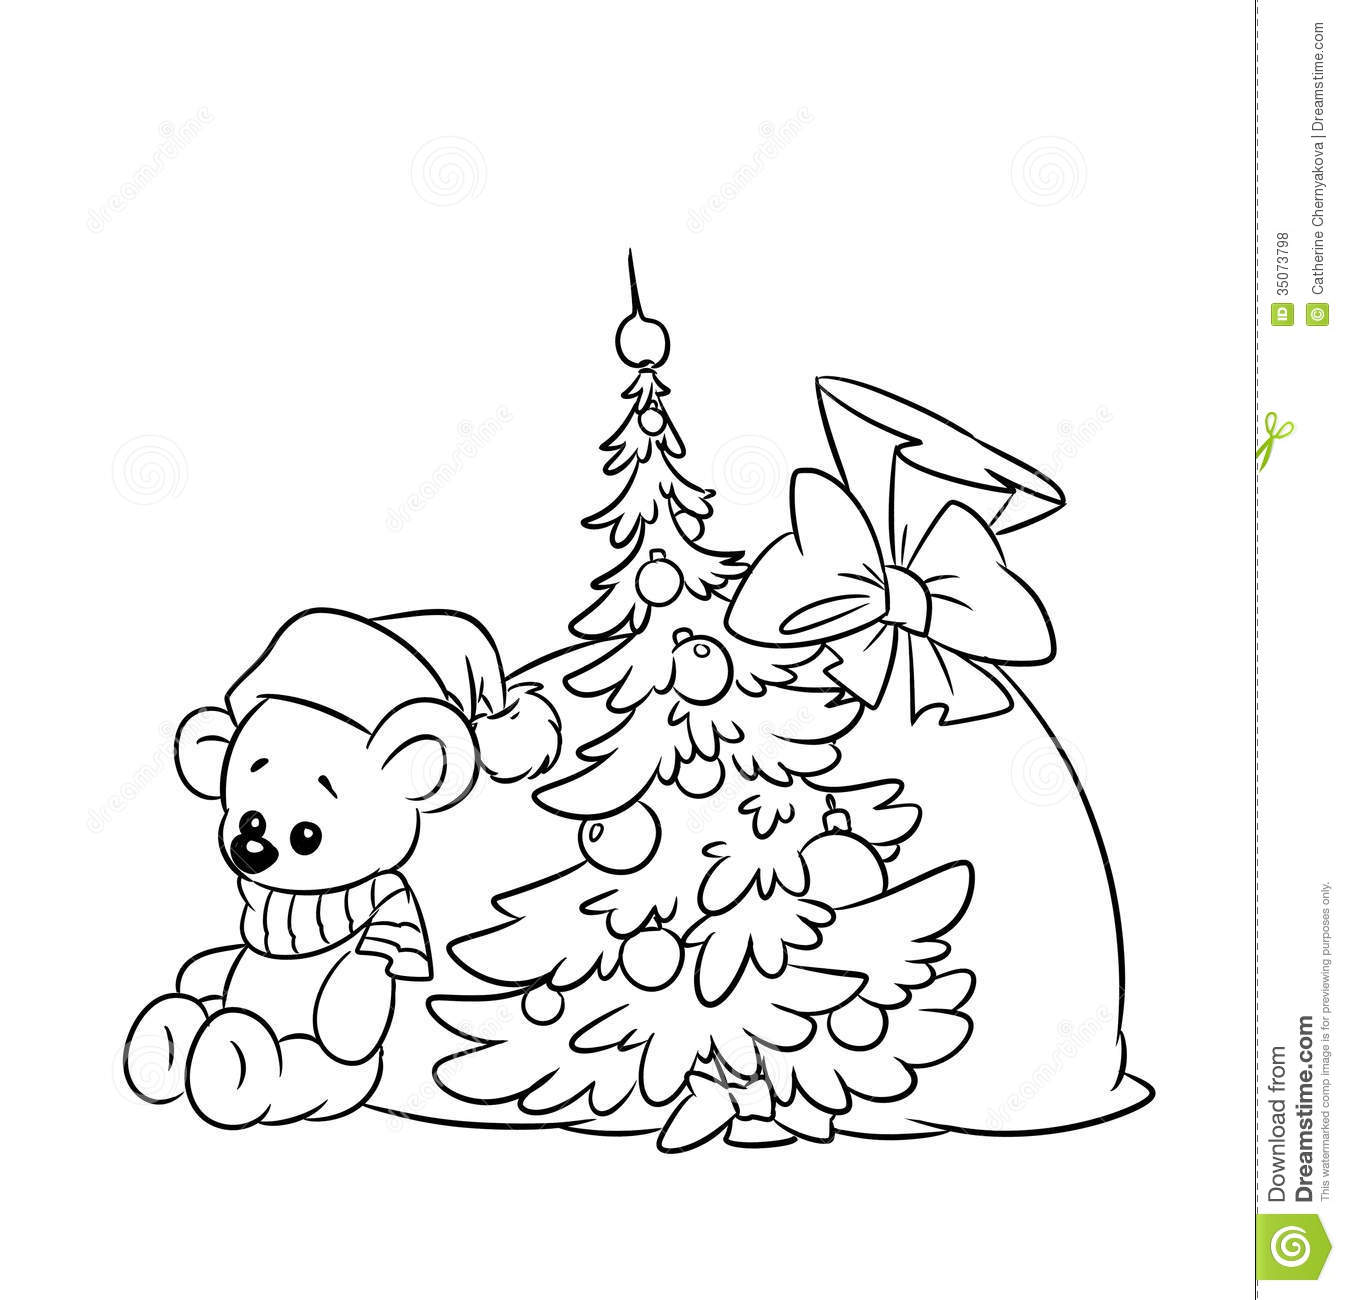 Coloring Pages Plush Teddy Christmas Royalty Free Stock